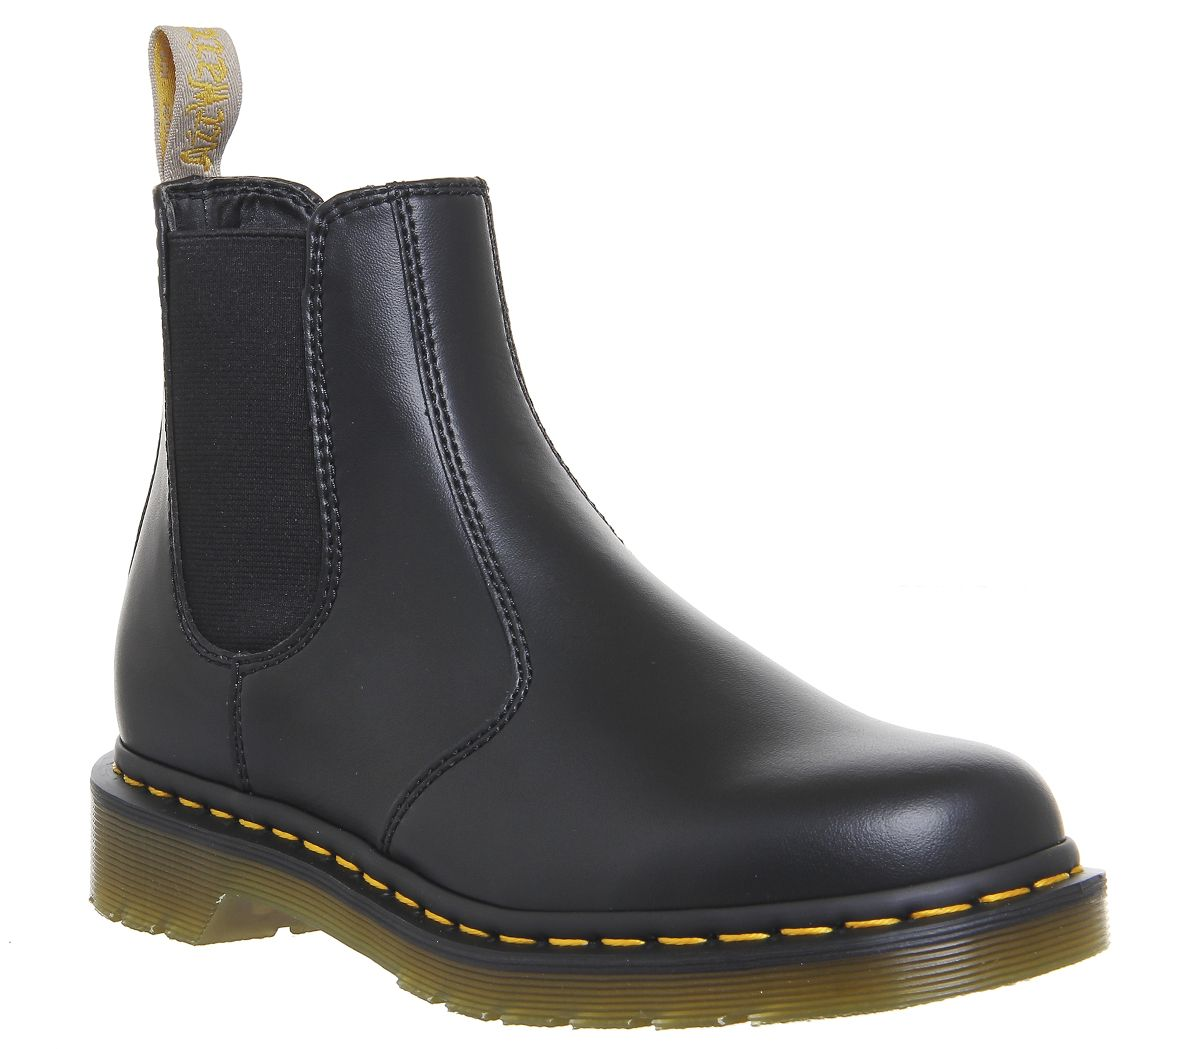 reputation first no sale tax real deal Dr. Martens Vegan 2976 Chelsea Boots Black - Ankle Boots